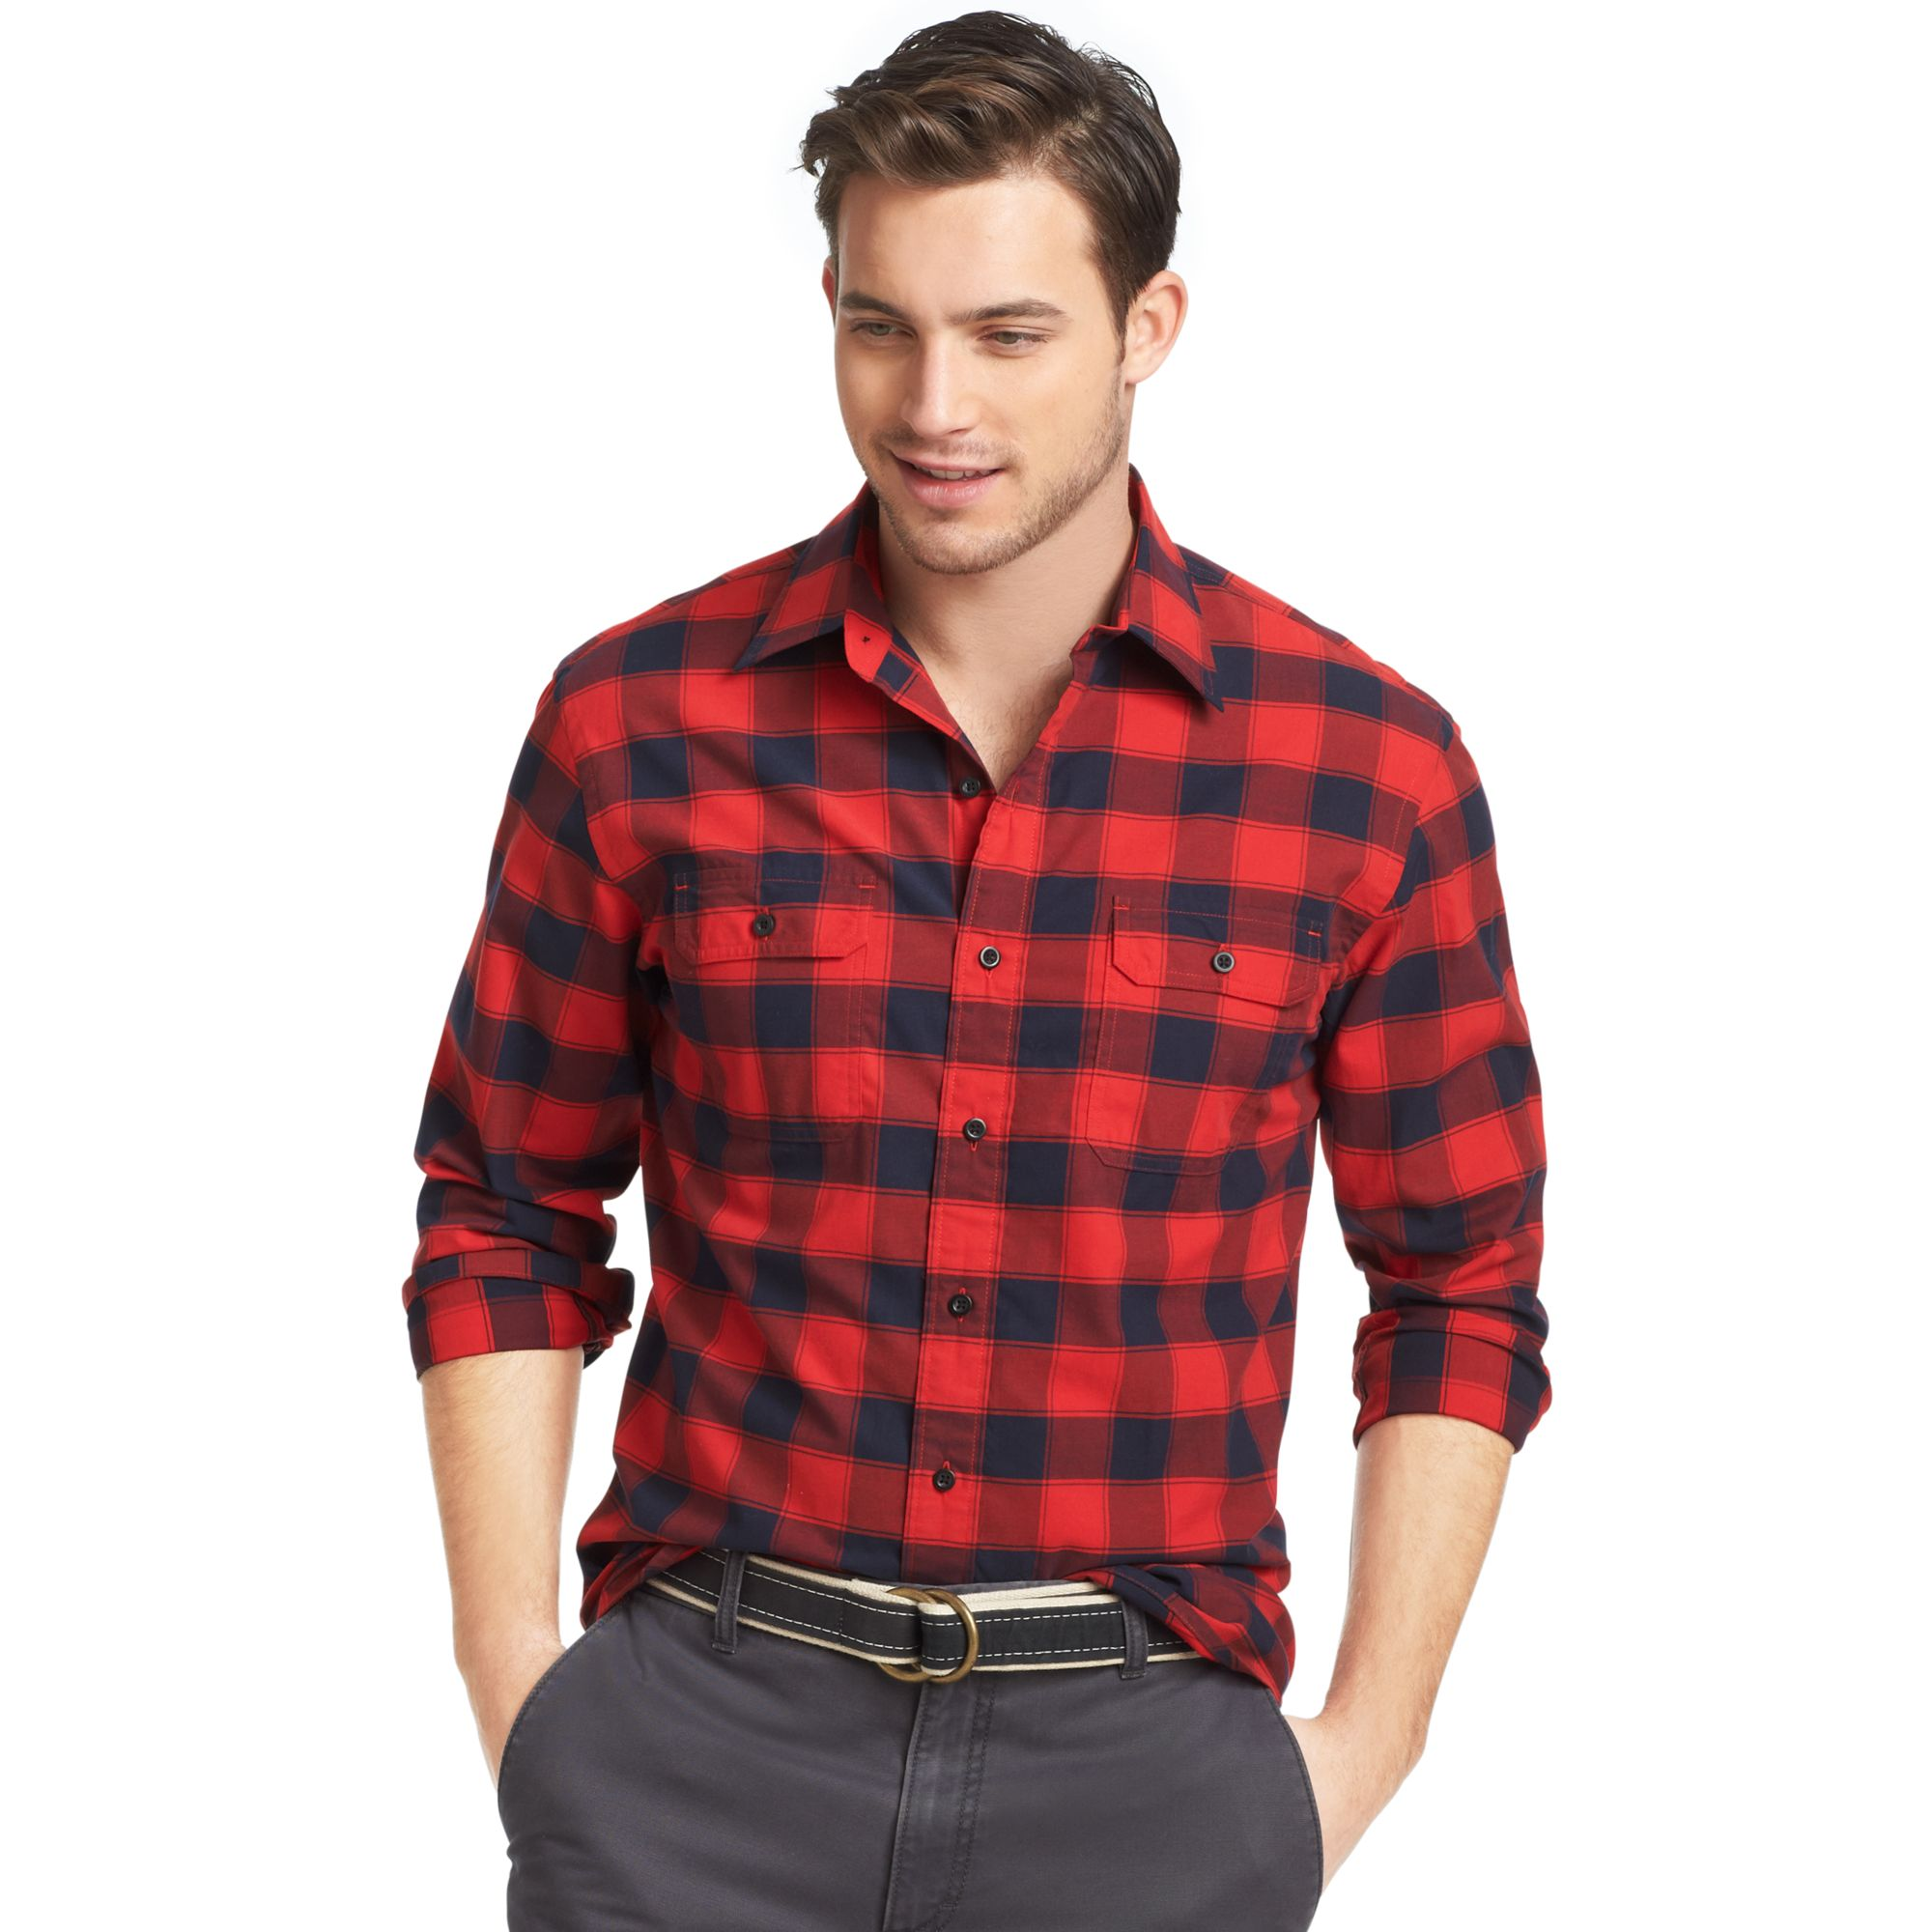 Plaid Shirts For Men Long Sleeve